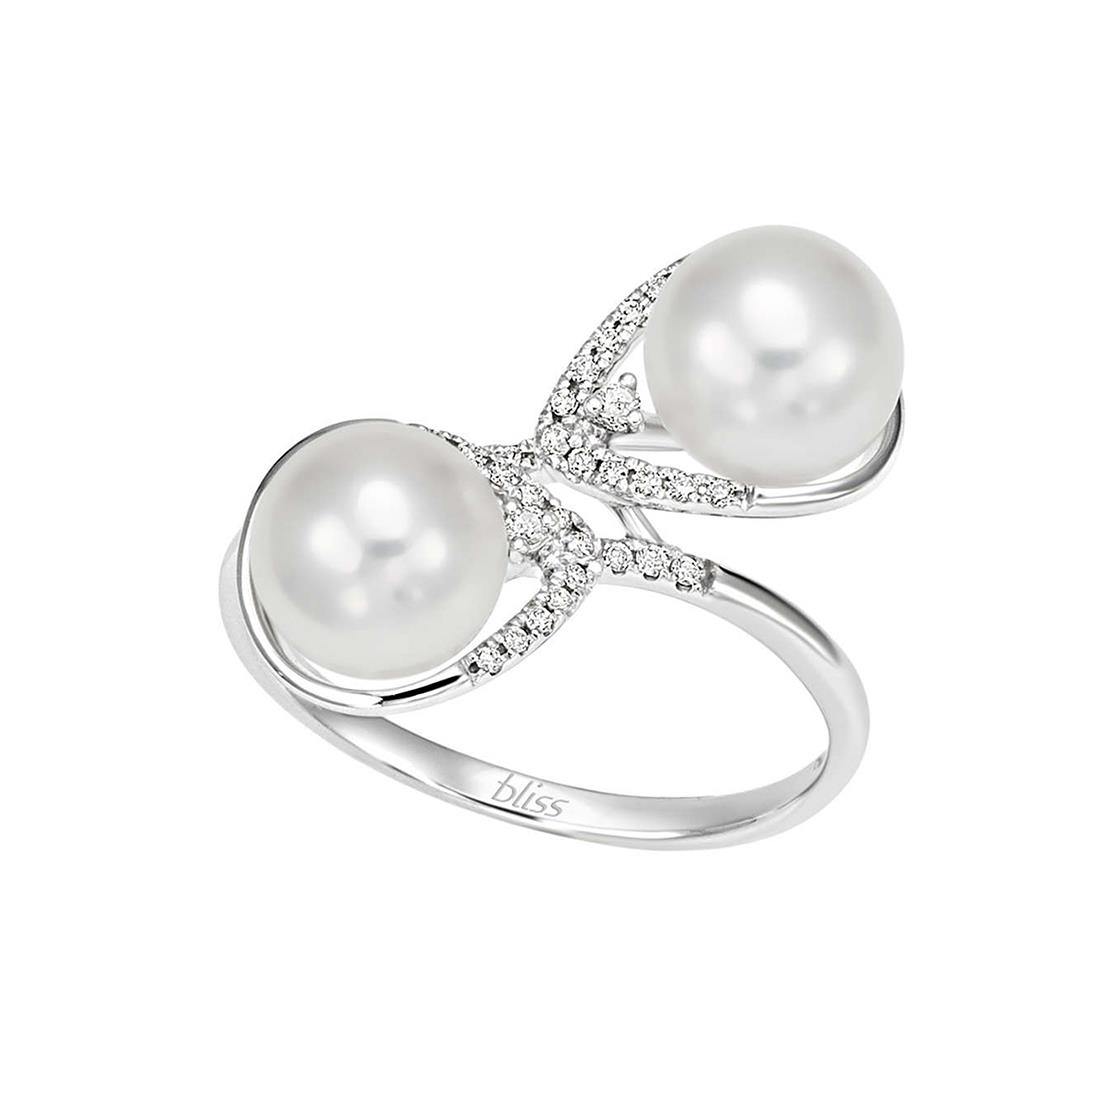 Anello design con diamanti e perle - BLISS